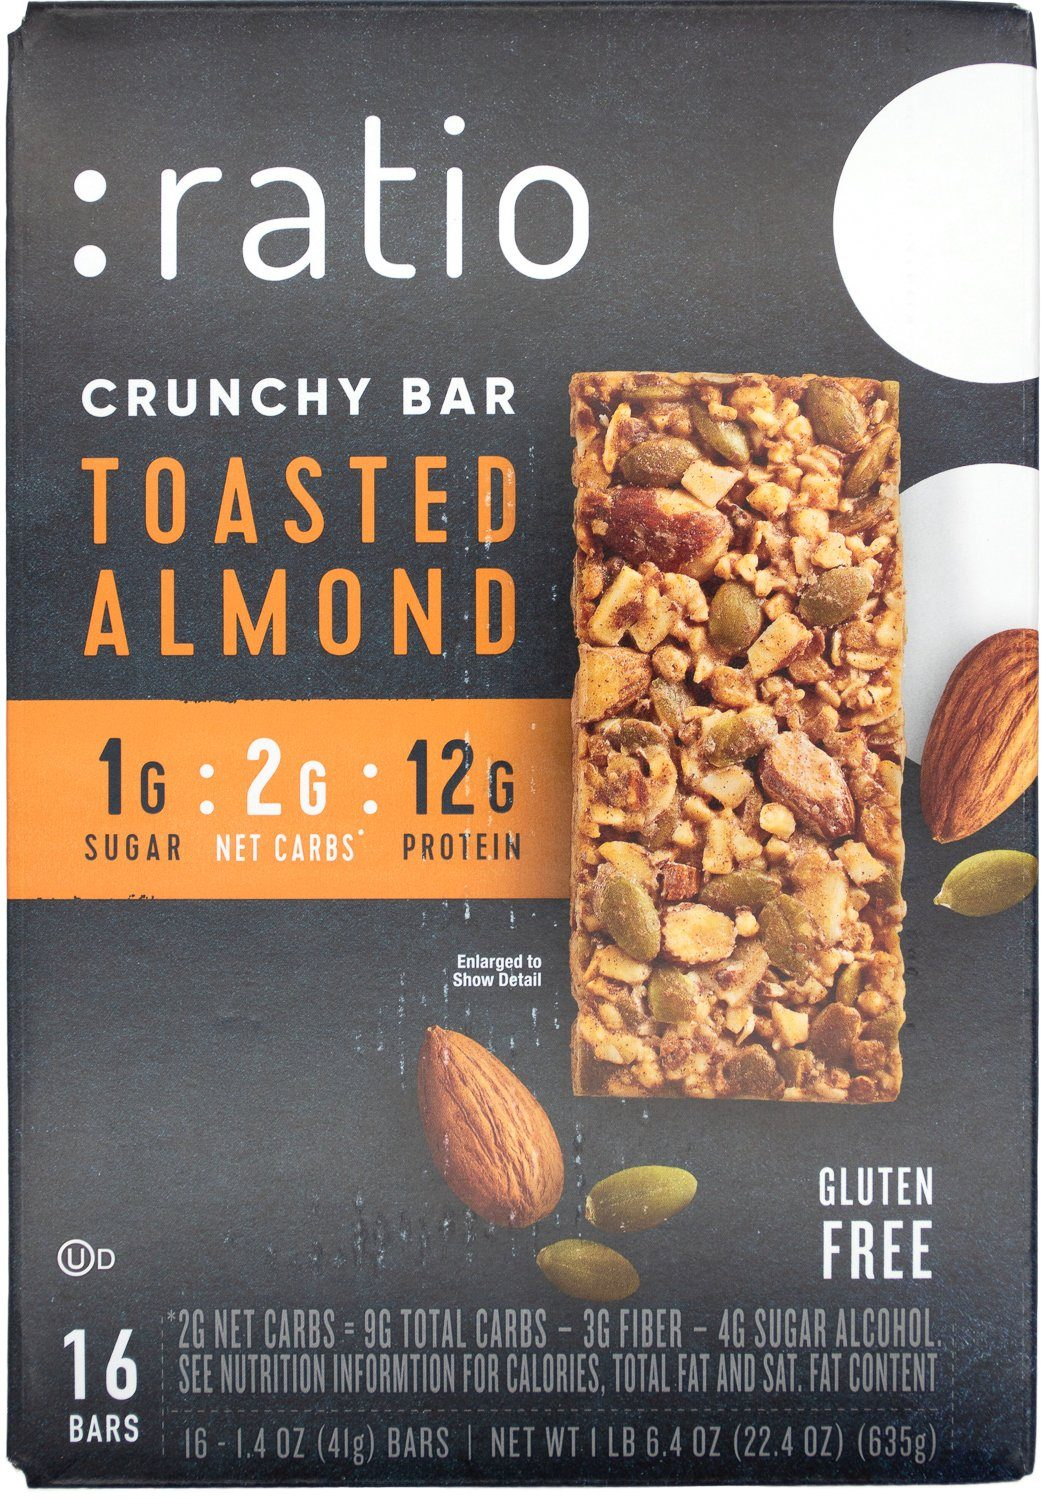 Ratio Crunchy Bar Ratio Toasted Almond 1.4 Oz-16 Count